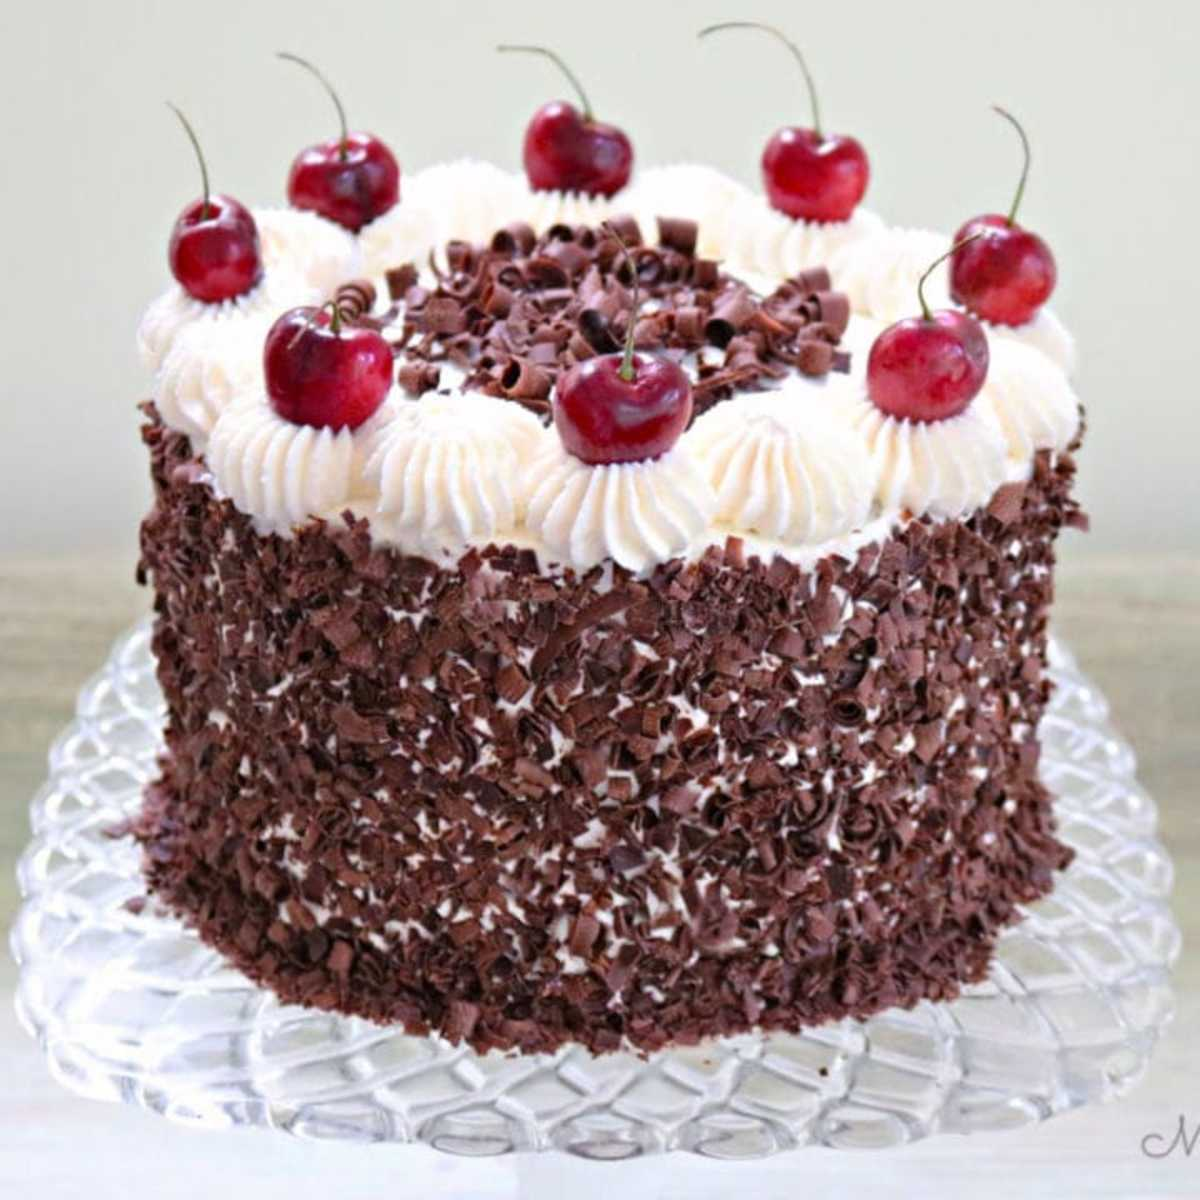 In 1970, Black Forest cake was all the rage.